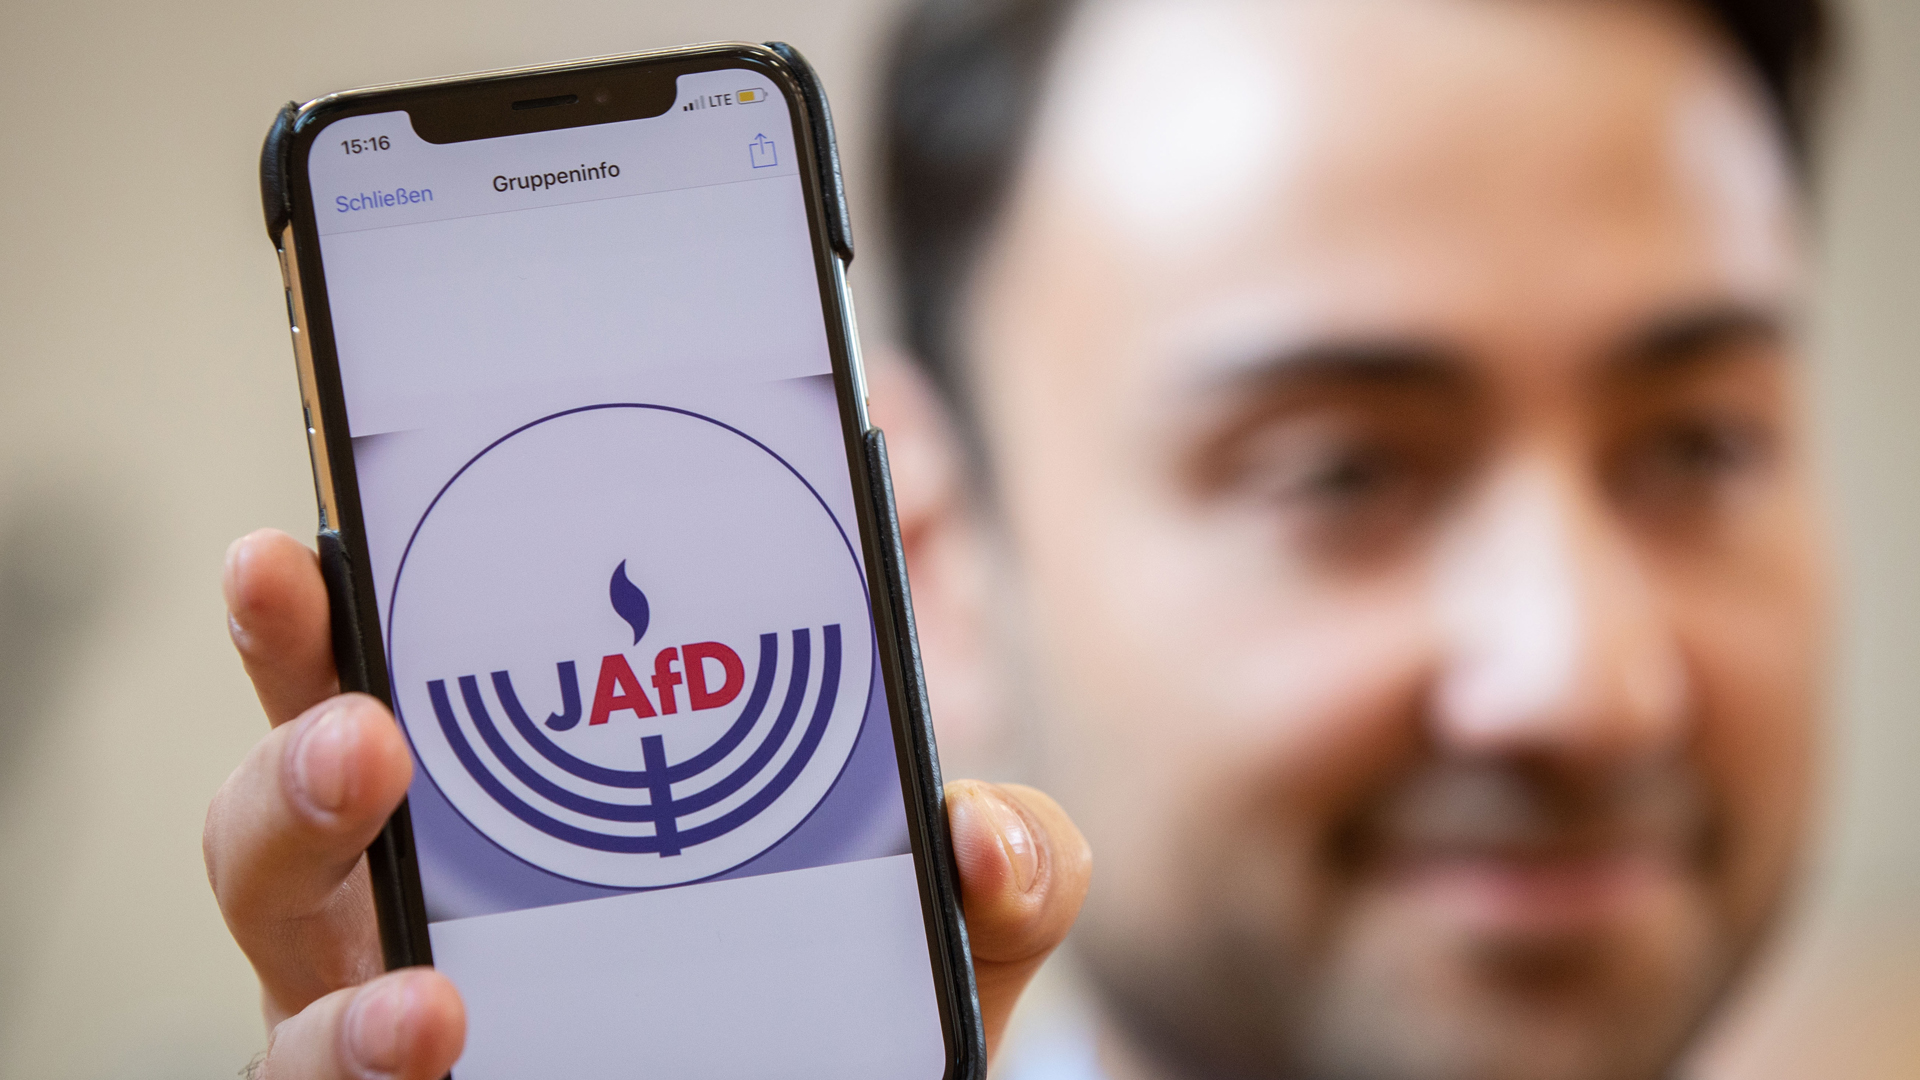 Committee member Leon Hakobian shows on his mobile phone a preliminary draft of a logo for a new Jewish grouping within Germany's far-right AfD party during the group's founding event on Oct. 7, 2018, in Wiesbaden, western Germany. (Credit: FRANK RUMPENHORST/AFP/Getty Images)